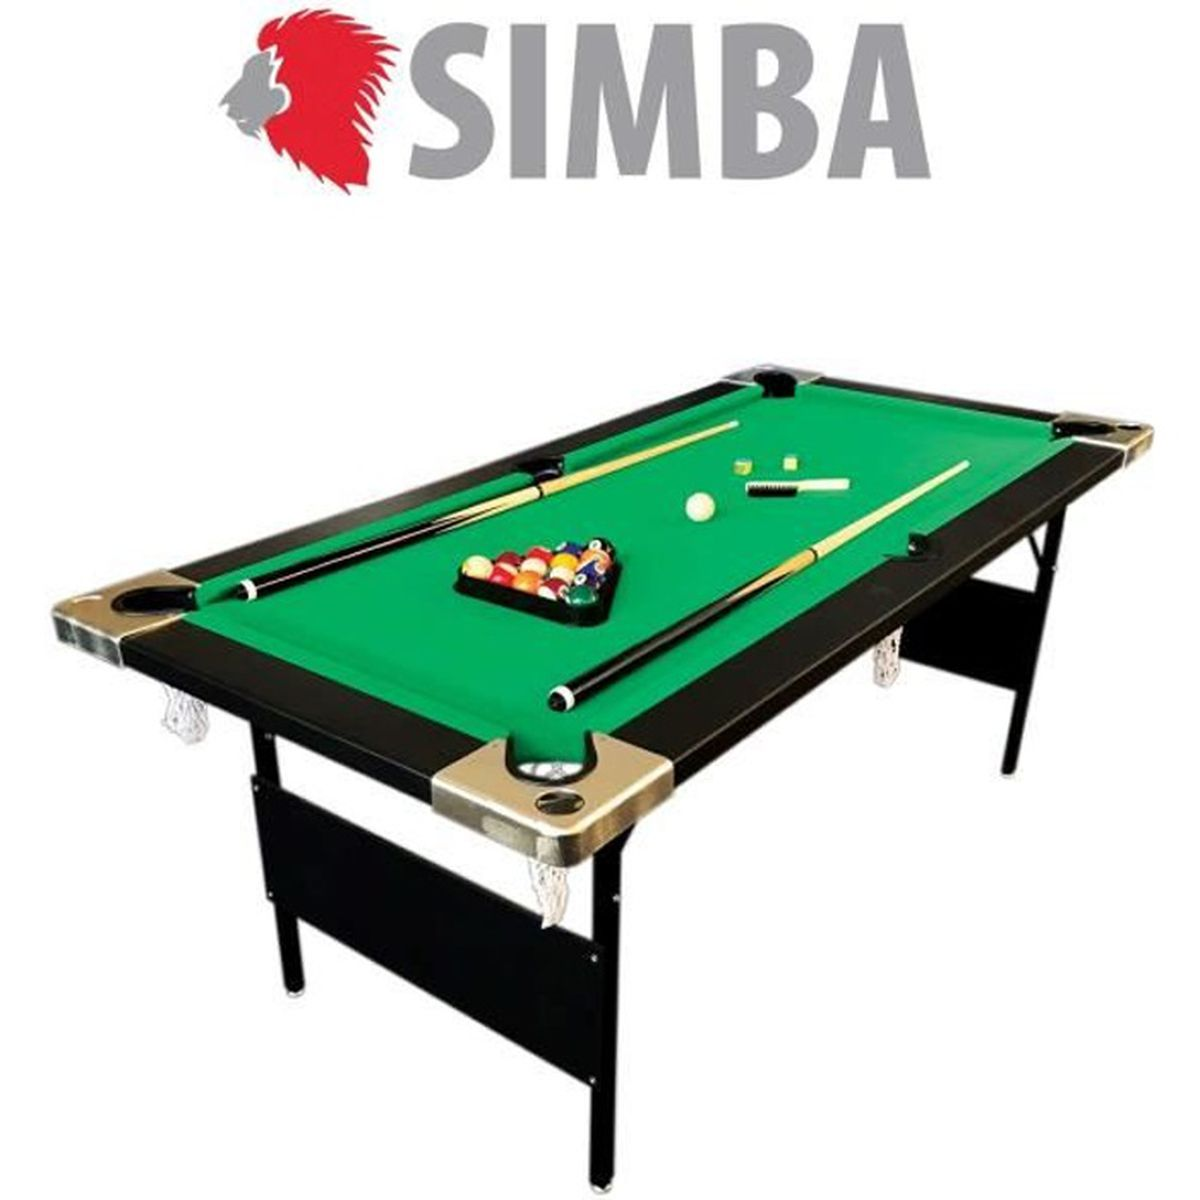 table de billard pliable achat vente jeux et jouets pas chers. Black Bedroom Furniture Sets. Home Design Ideas